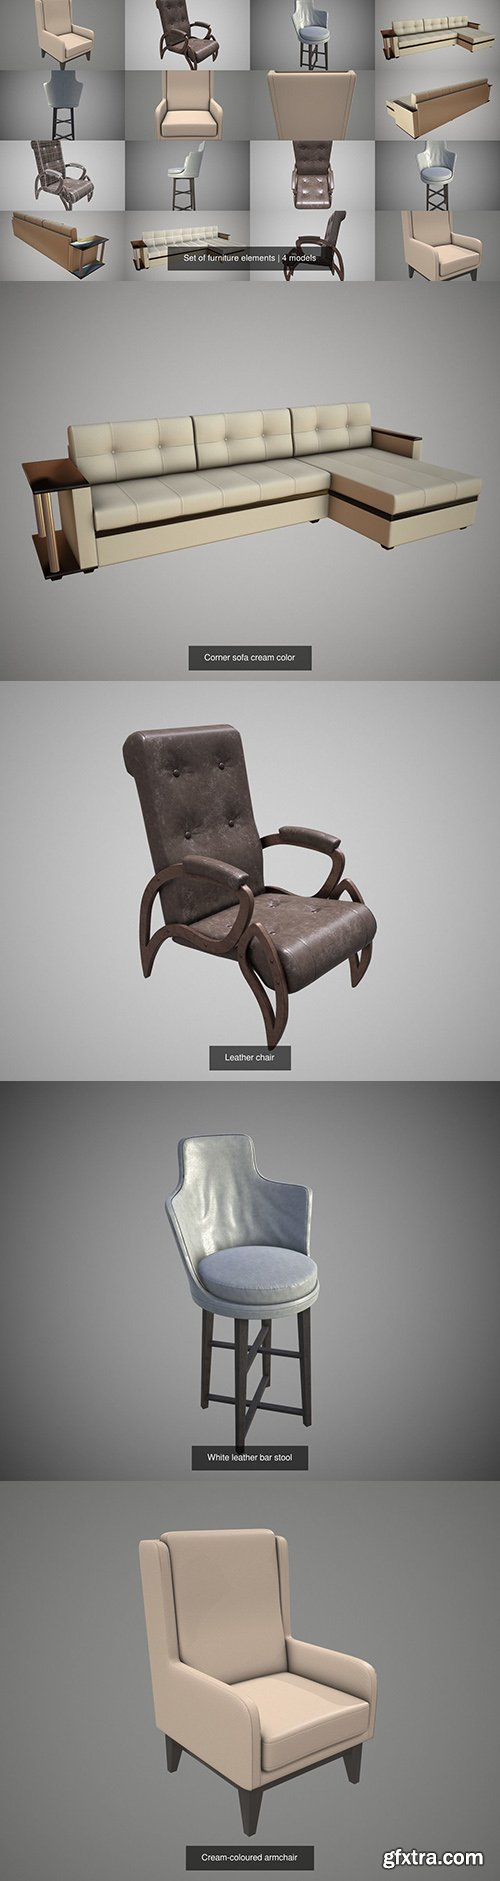 Cgtrader - Set of furniture elements 3D Model Collection